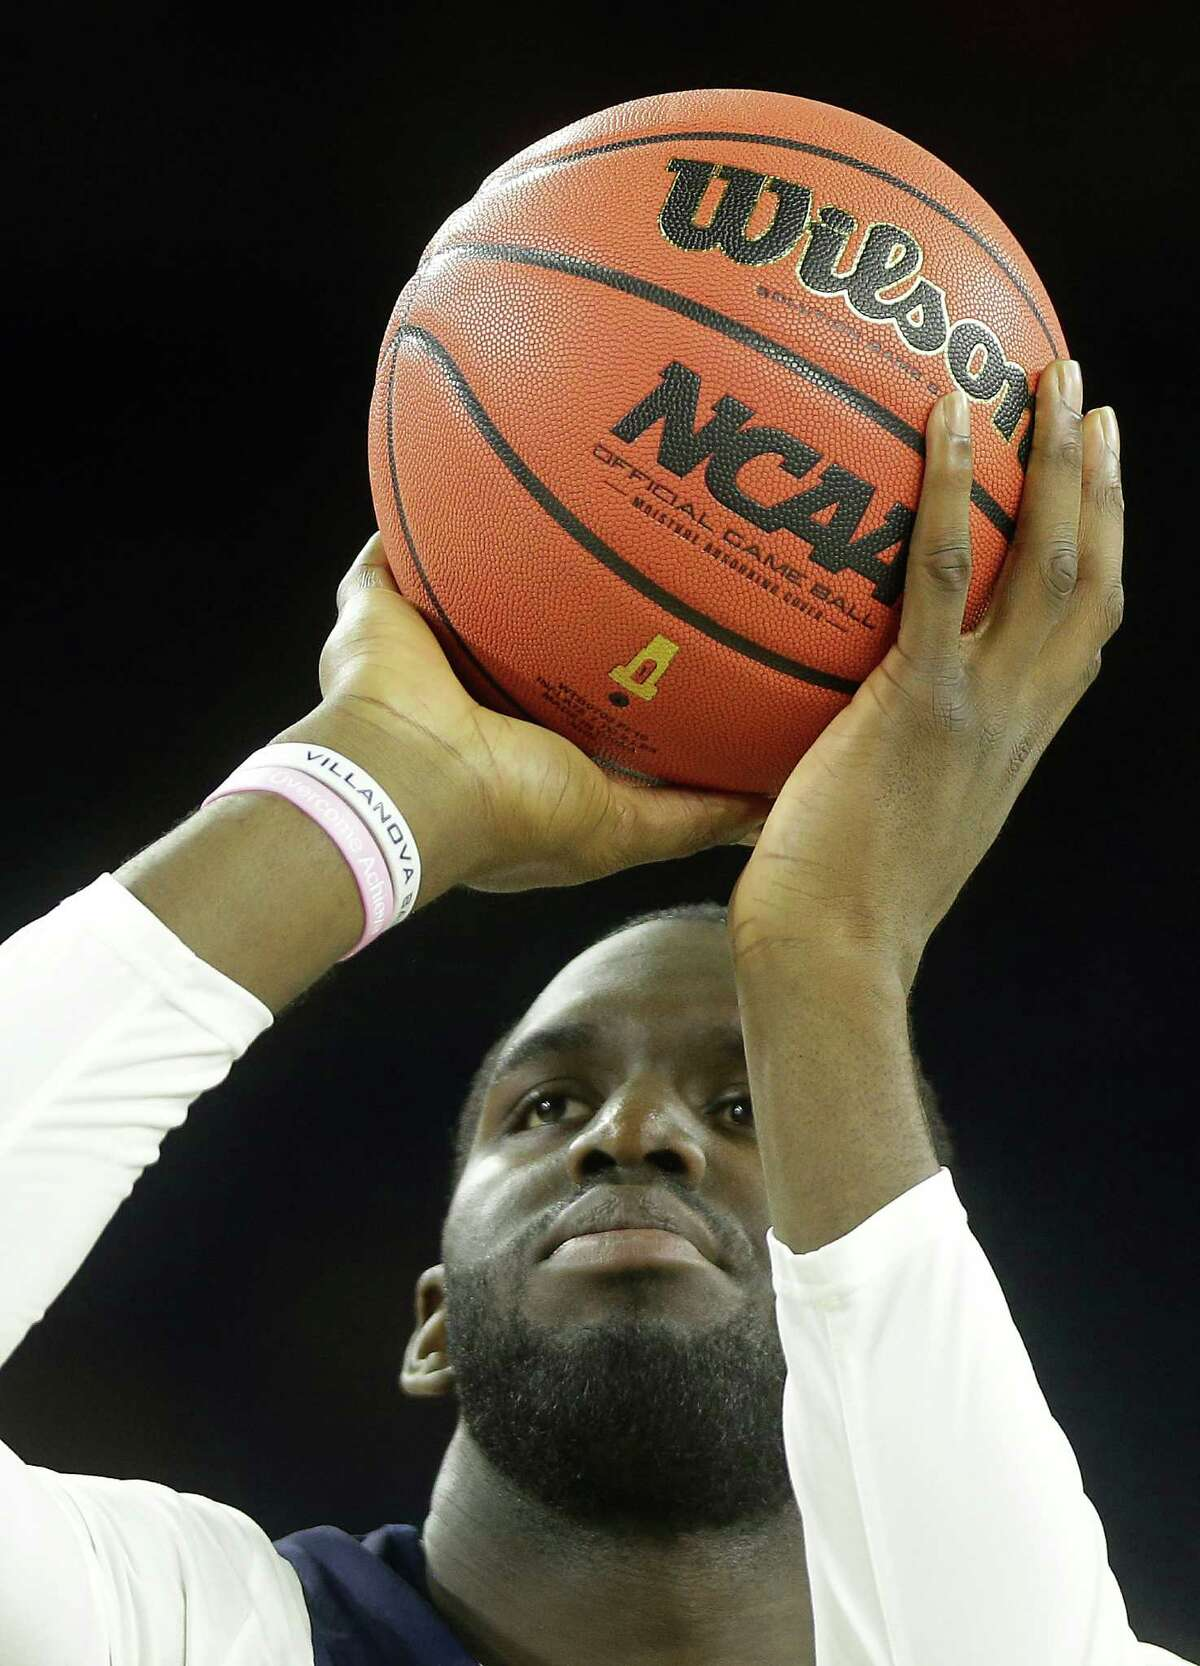 Villanova forward Daniel Ochefu shoots a free throw during practice for the NCAA Final Four at NRG Stadiium on Friday, April 1, 2016, in Houston.